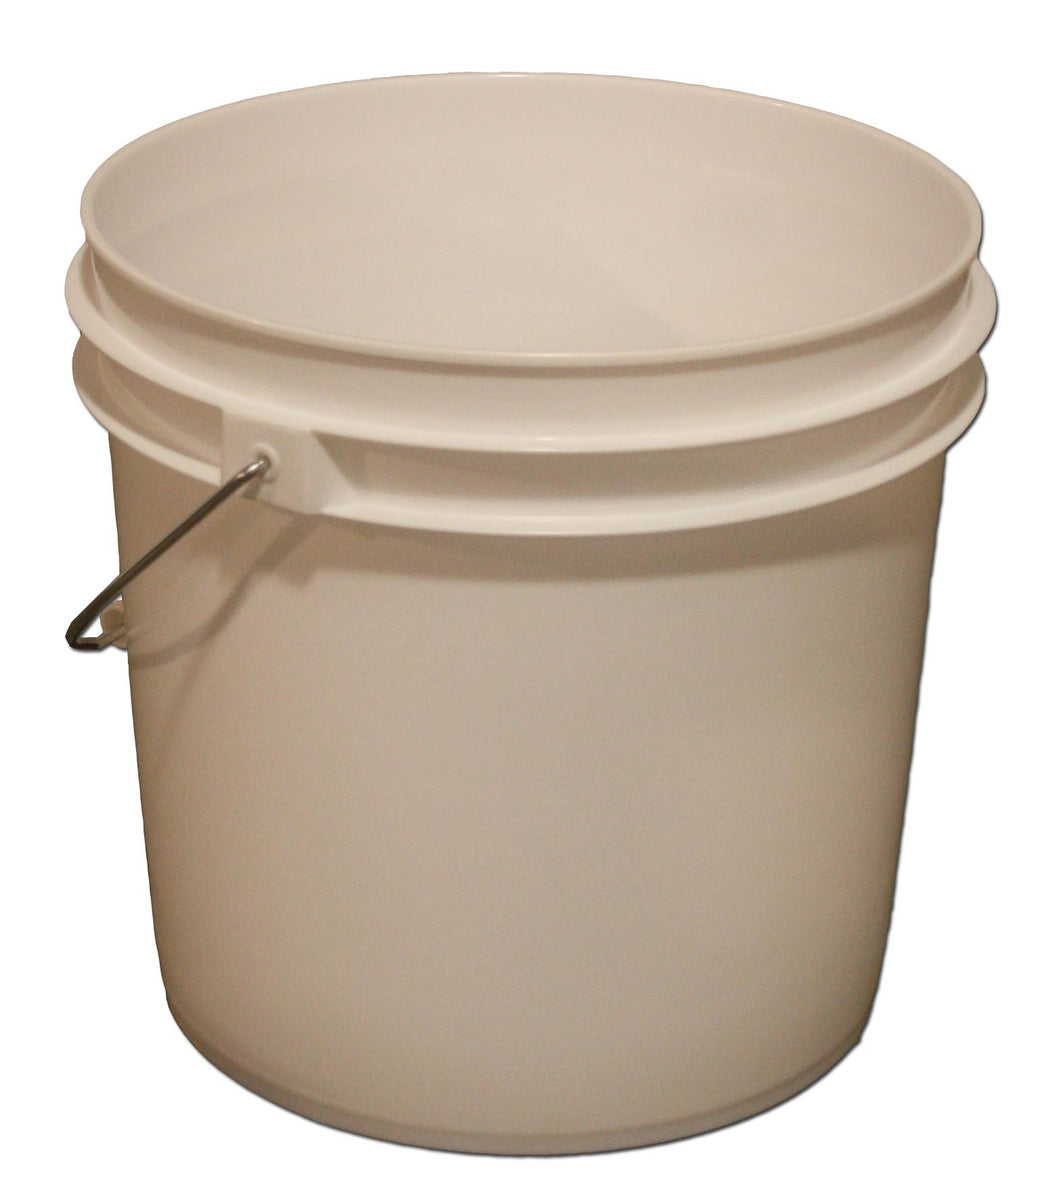 2 Gallon Bucket-Bucket